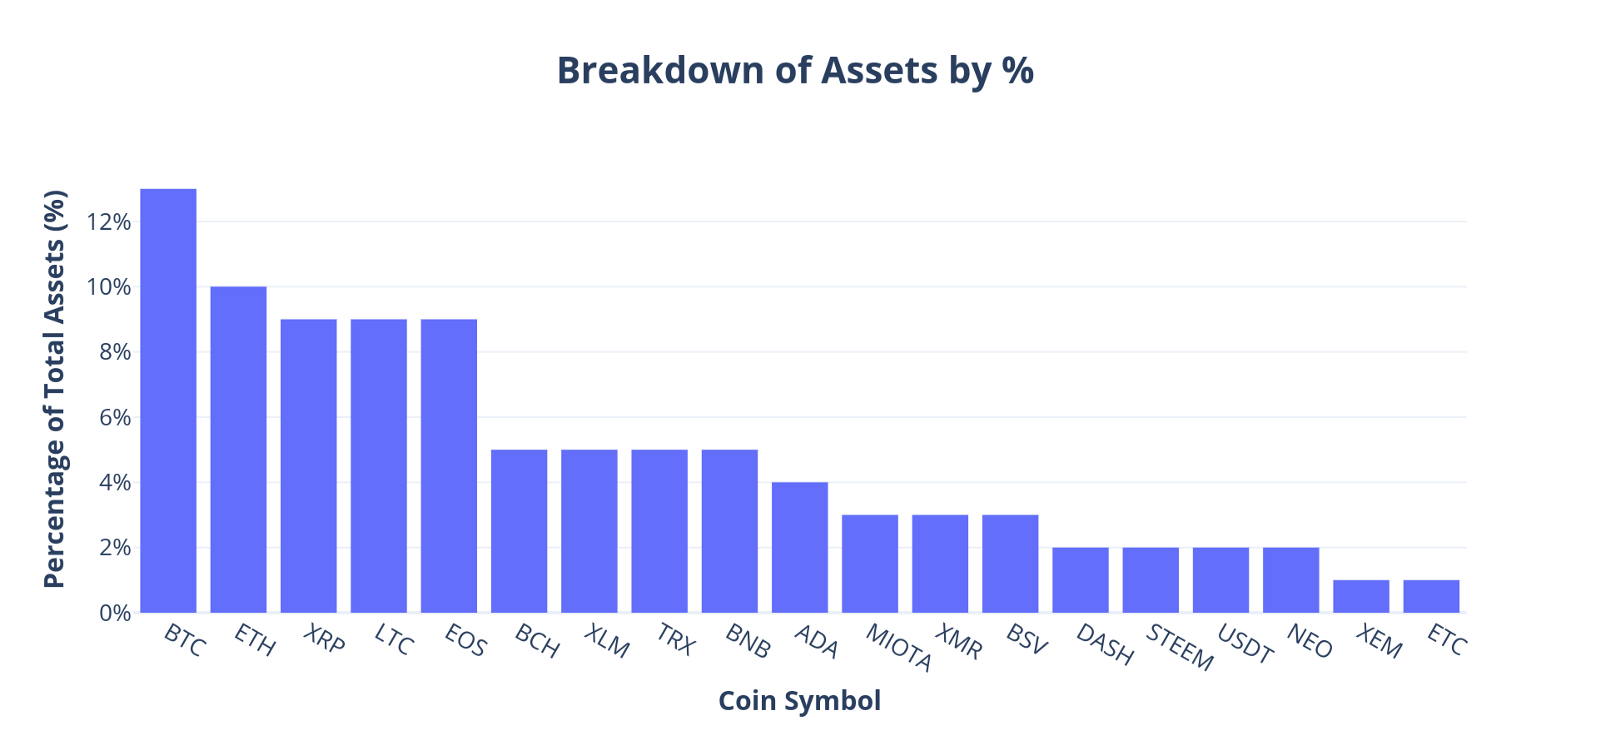 Breakdown of HodlBot users' assets by %